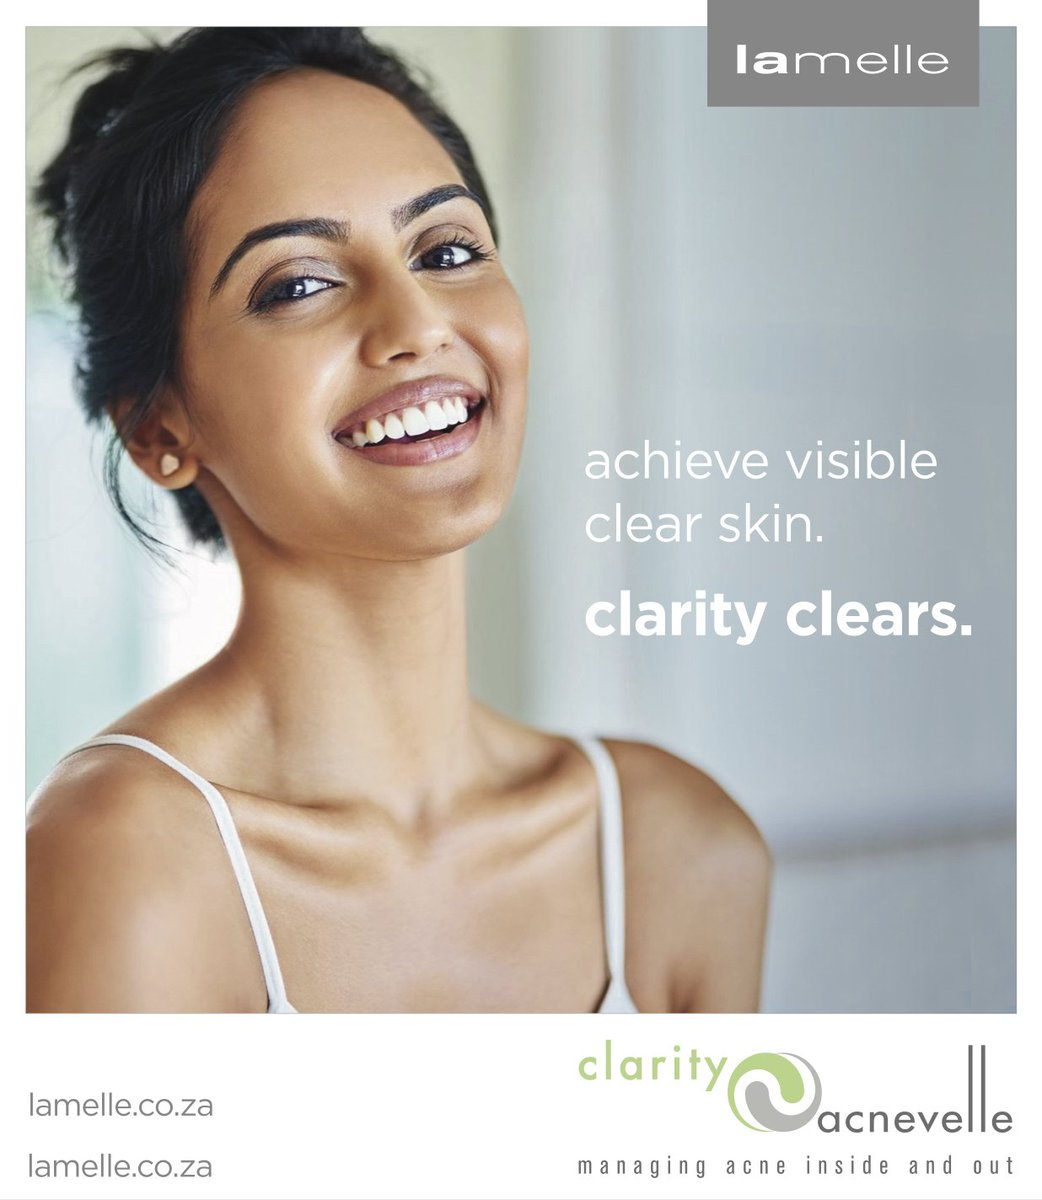 Get visibly clear skin now with Clarity. #ClarityClears